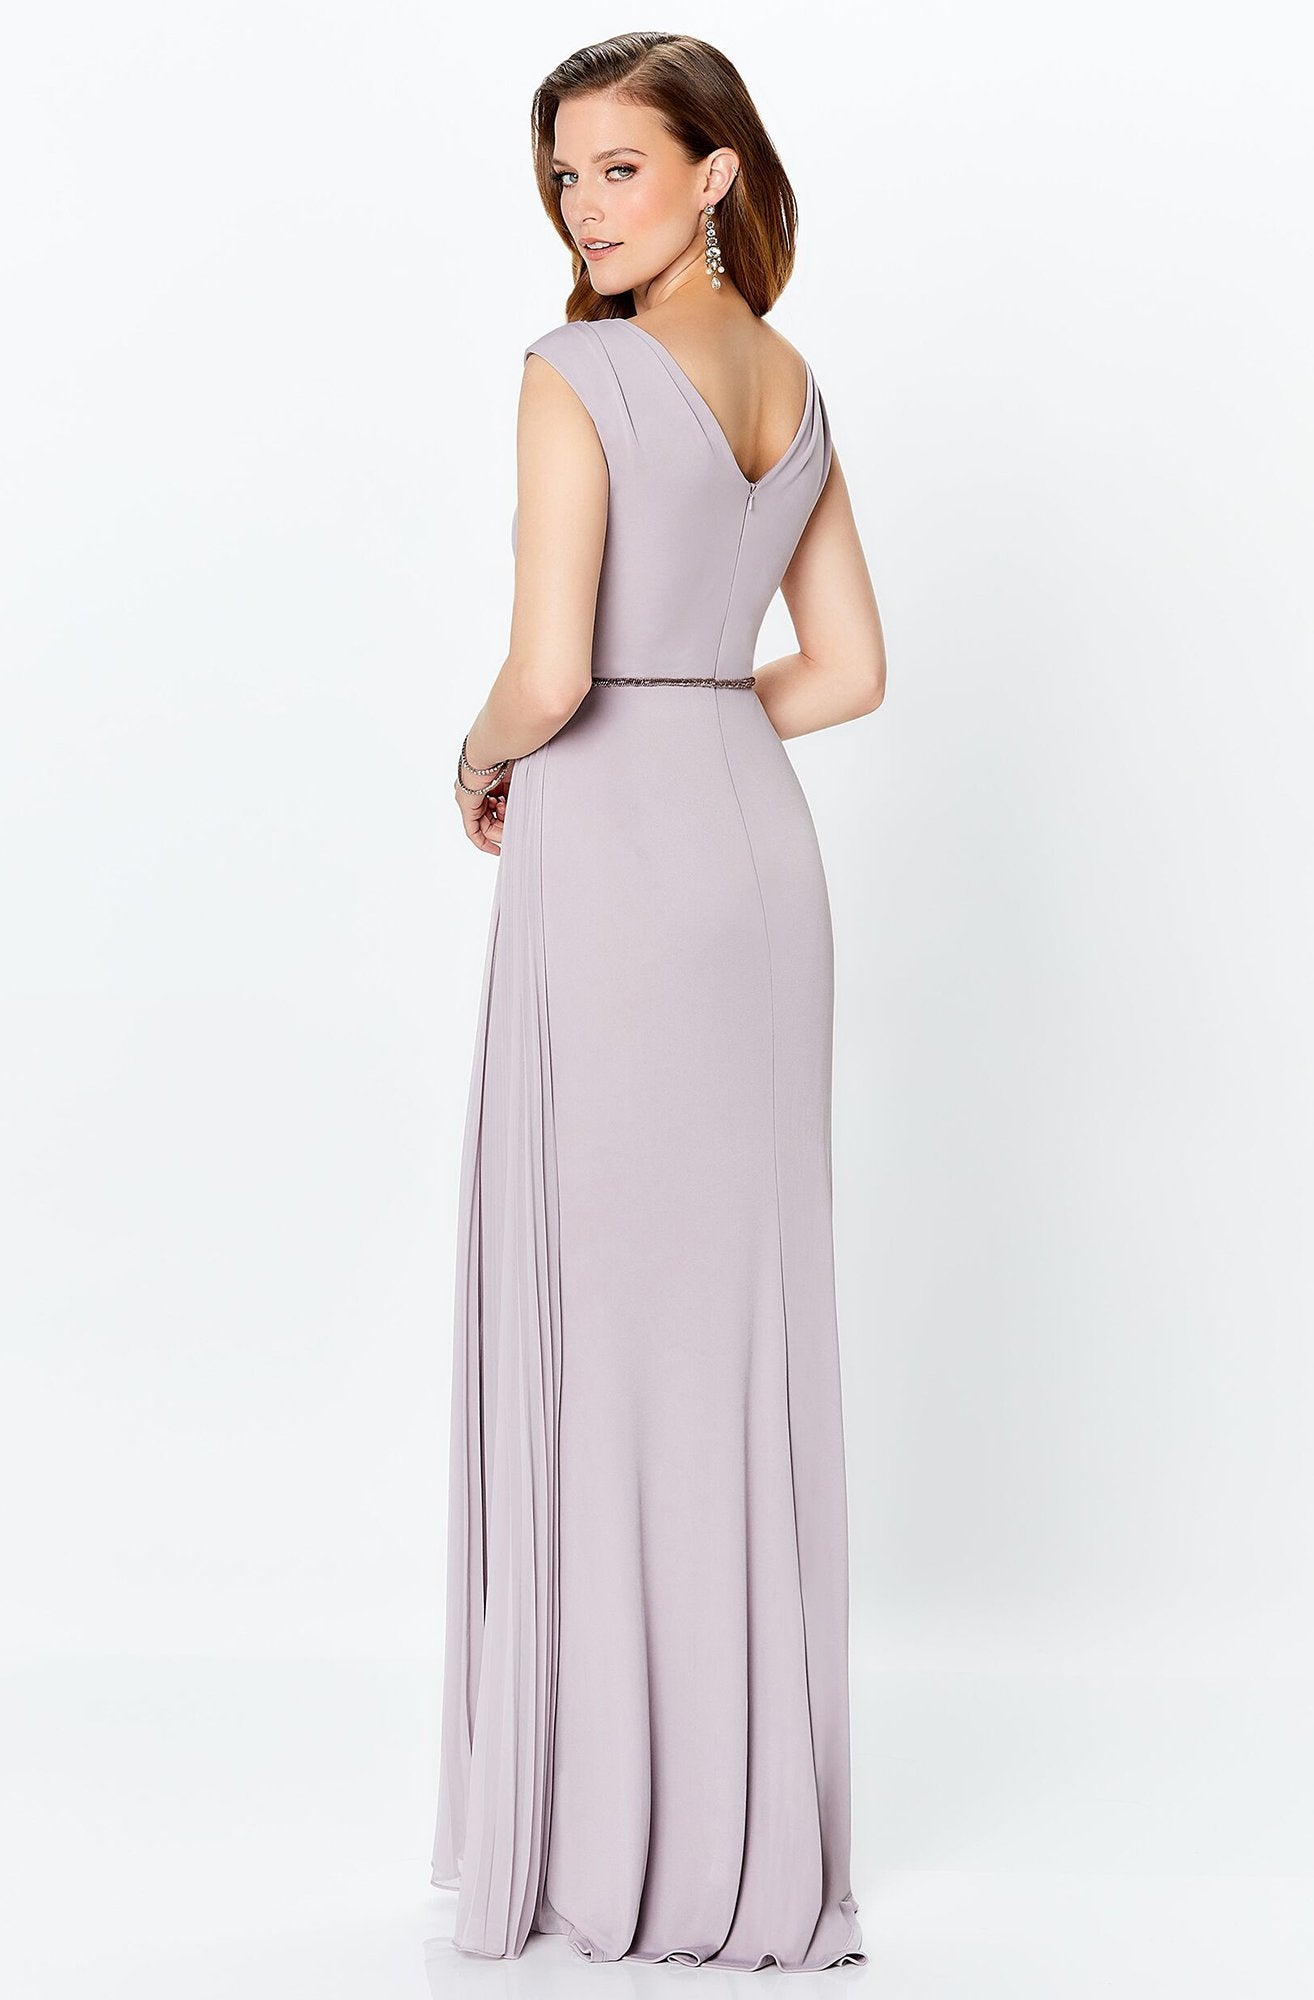 Mon Cheri - V-Neck Pleated A-Line Evening Dress 119934 In Gray